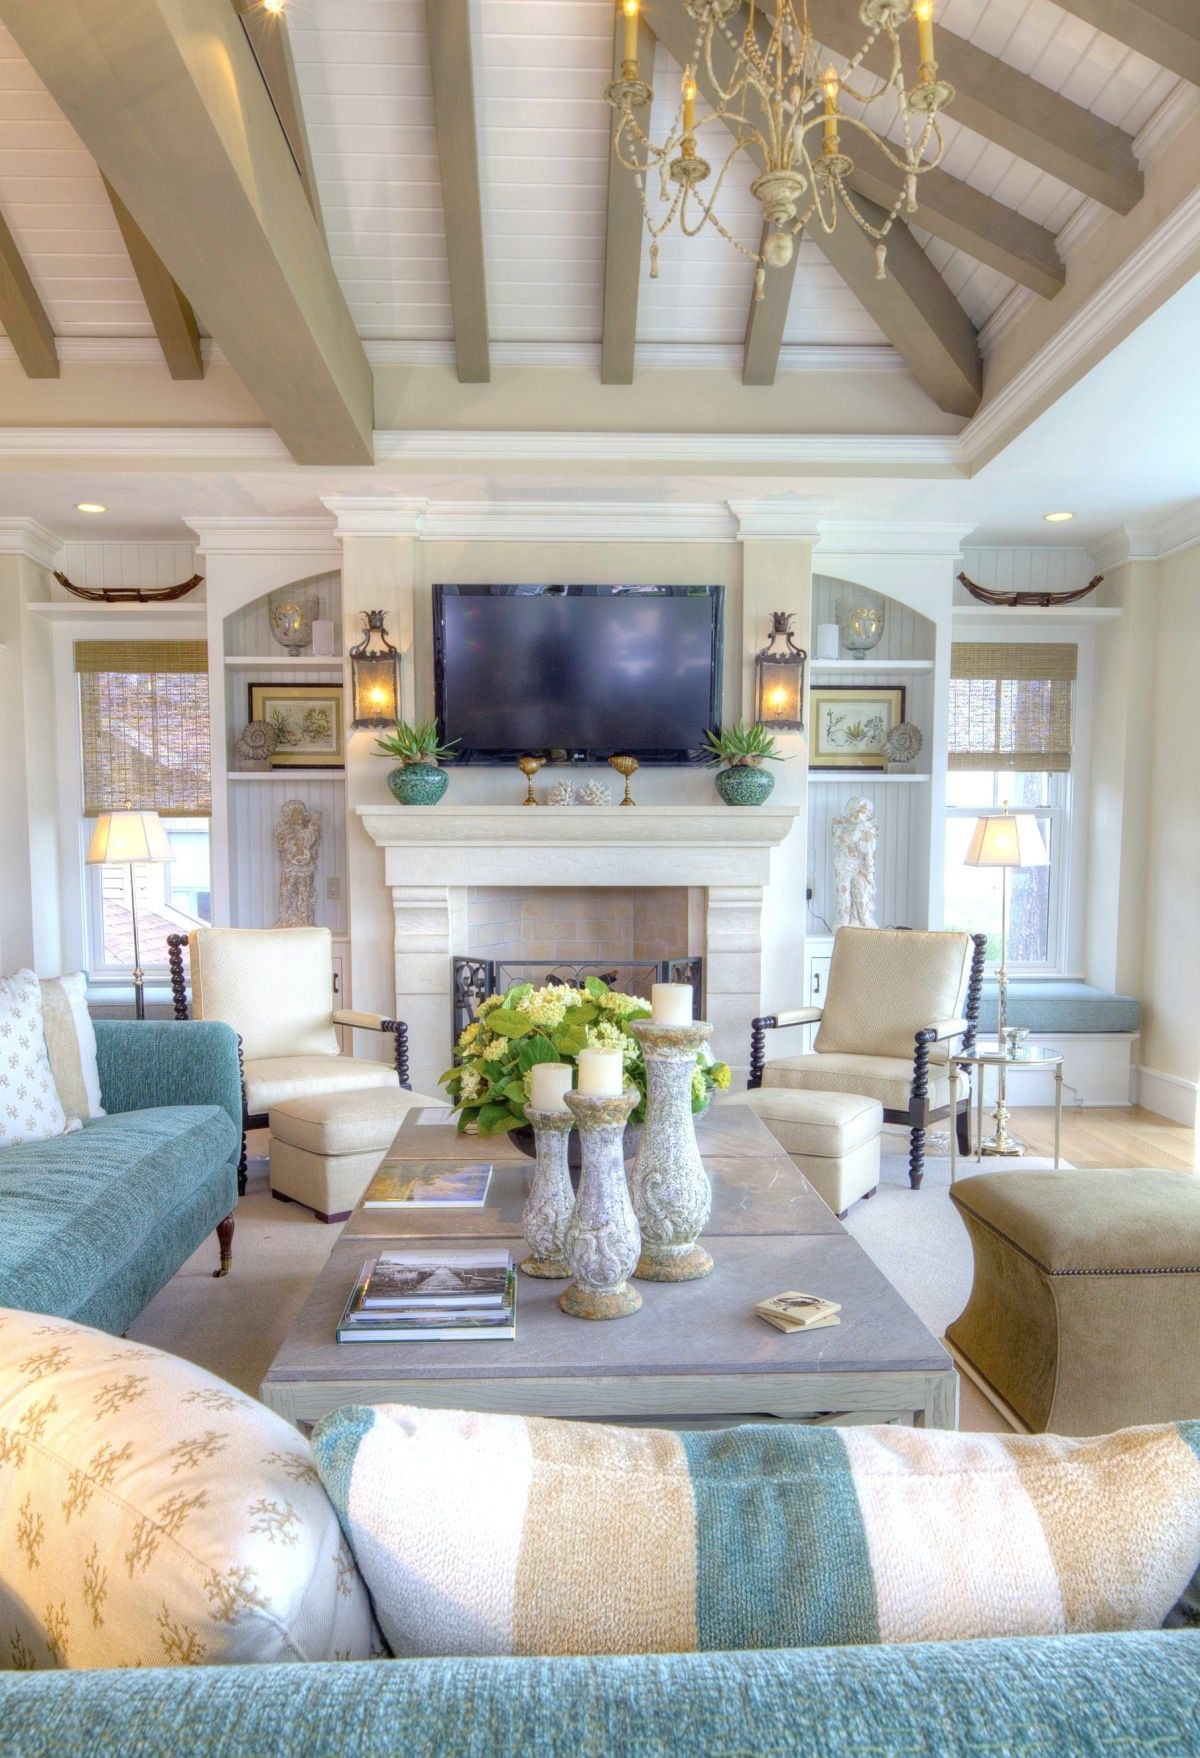 Paint colors for in bedroom traditional with exposed beams butter - How To Install Faux Wood Beams